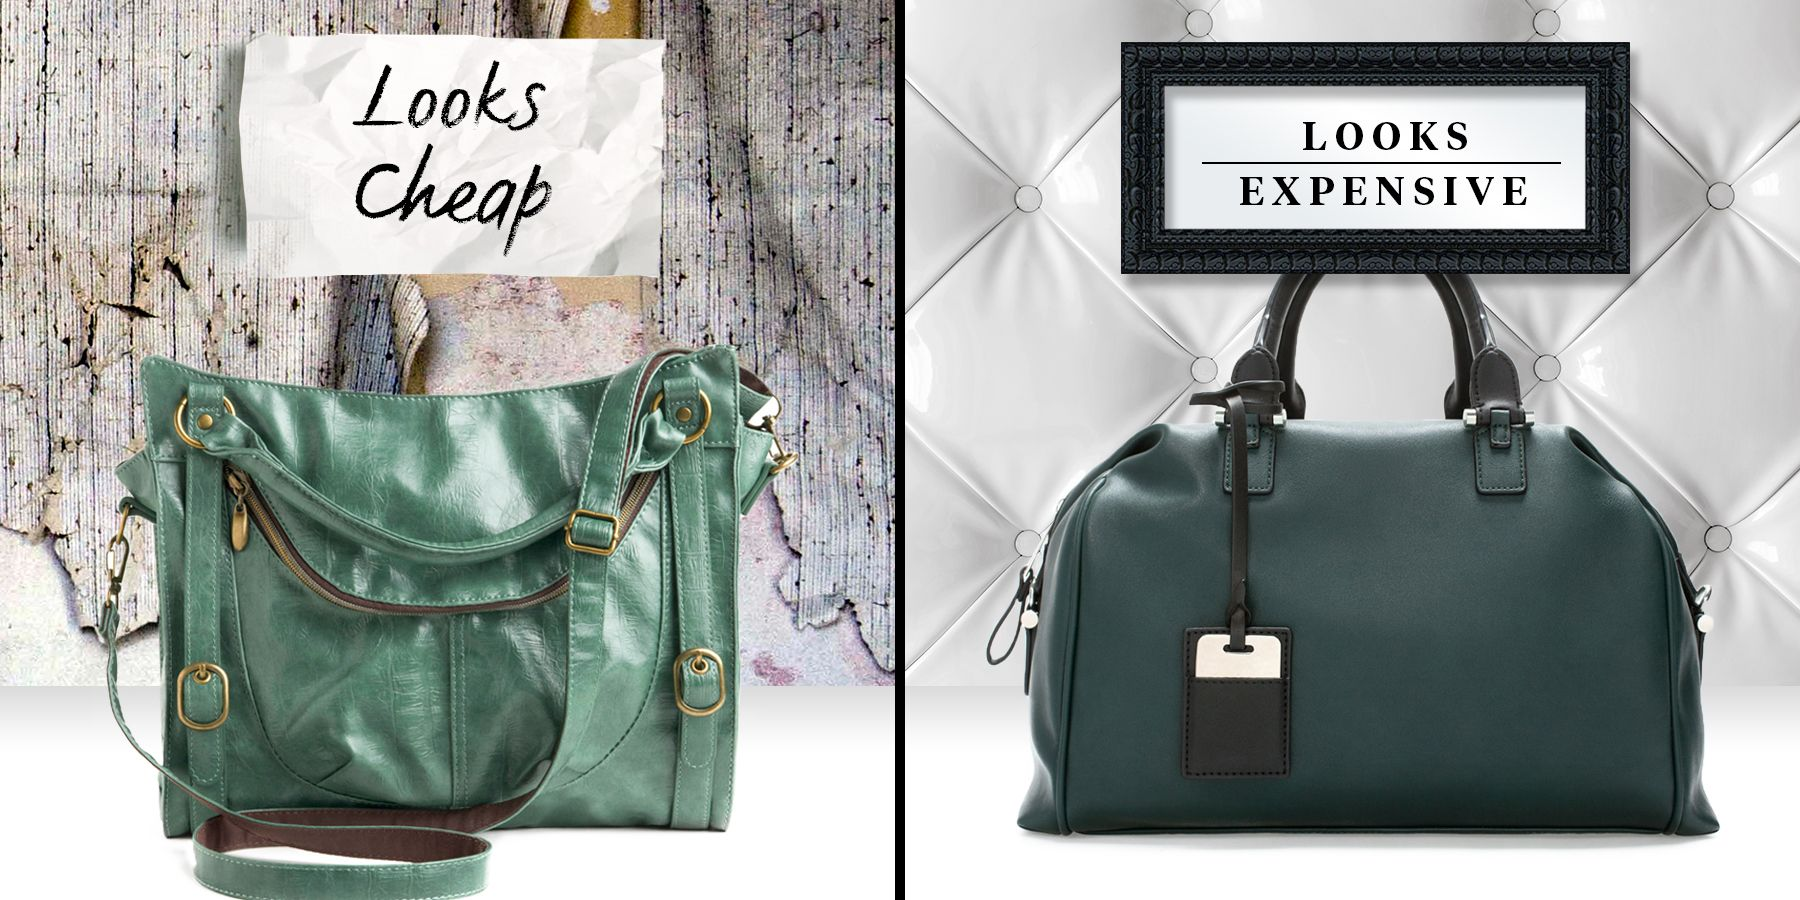 10 Reasons Your Bag Looks Cheap 76fe3a53b099f